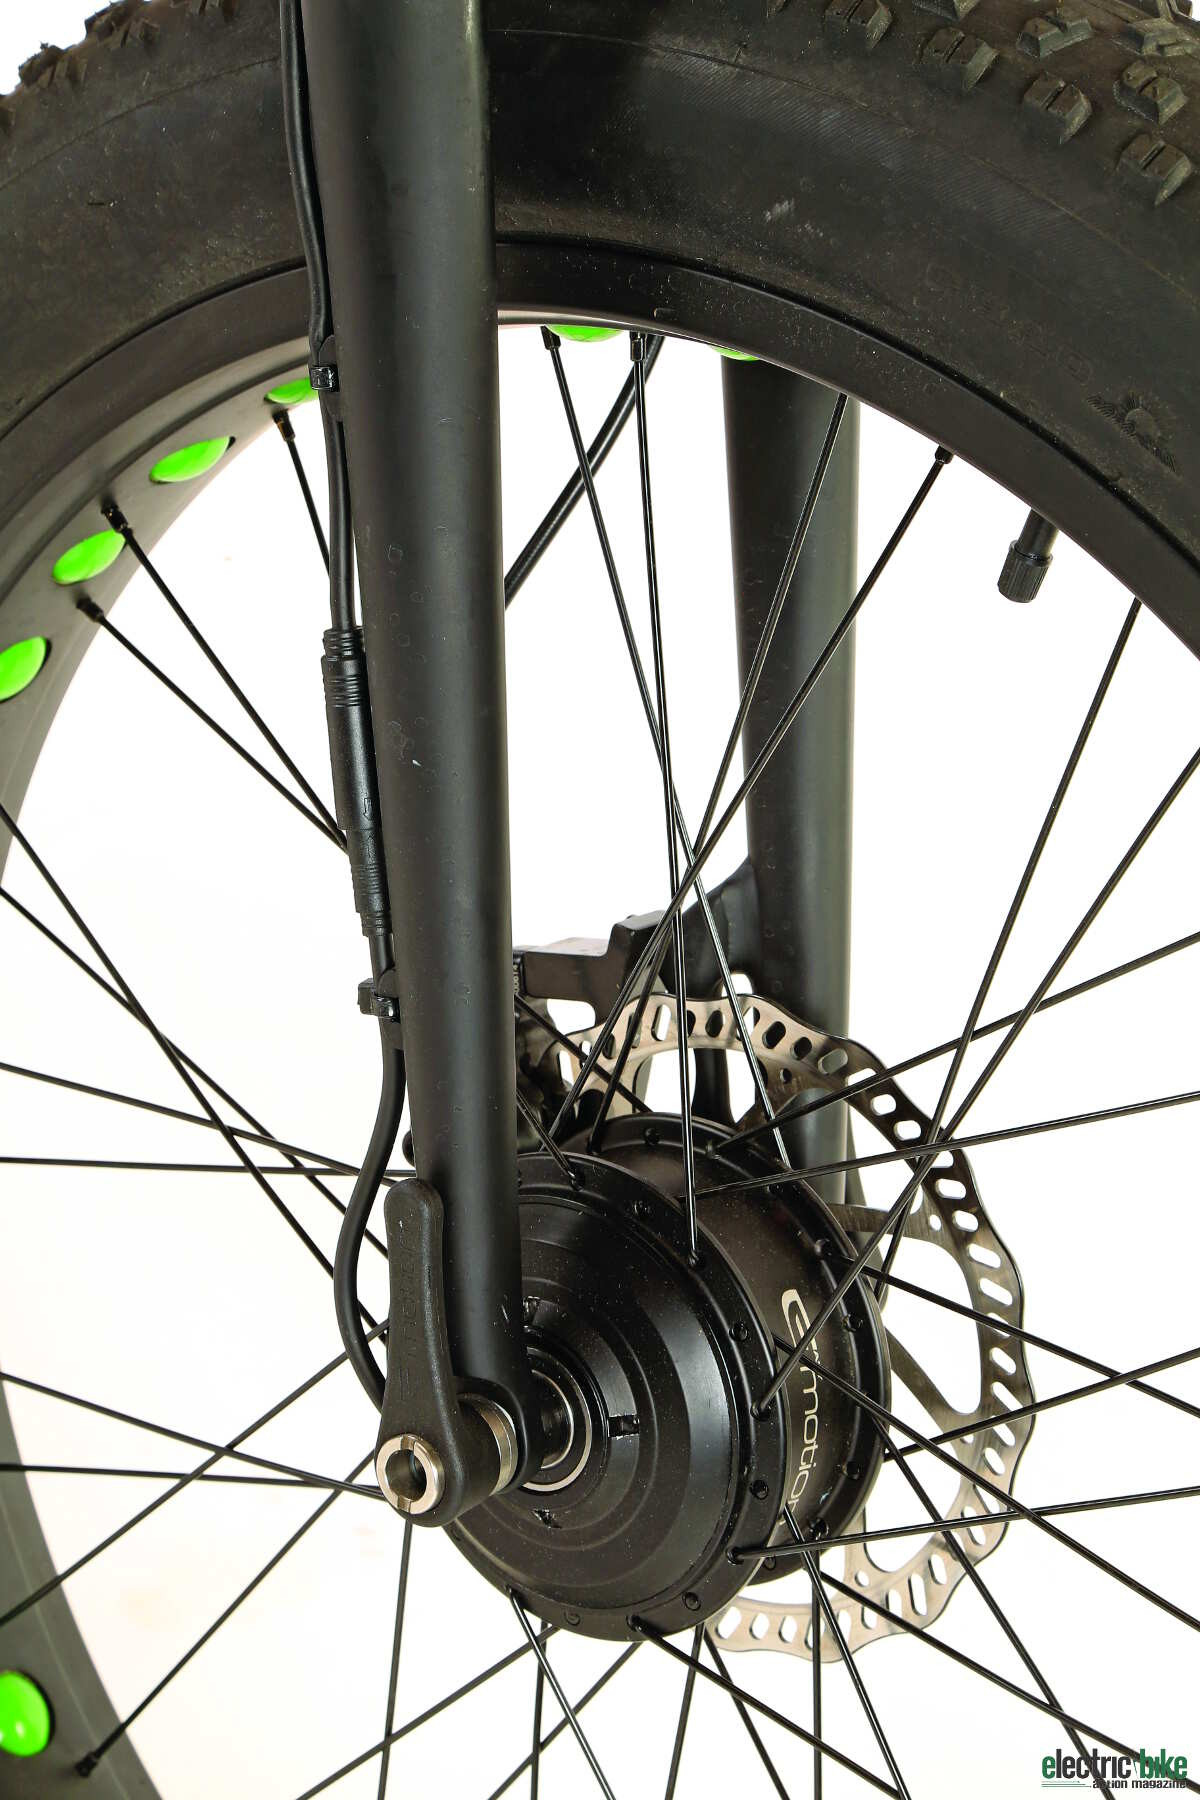 To motivate the front wheel, the Bud gets a 250-watt hub motor, and the cabling is very clean.